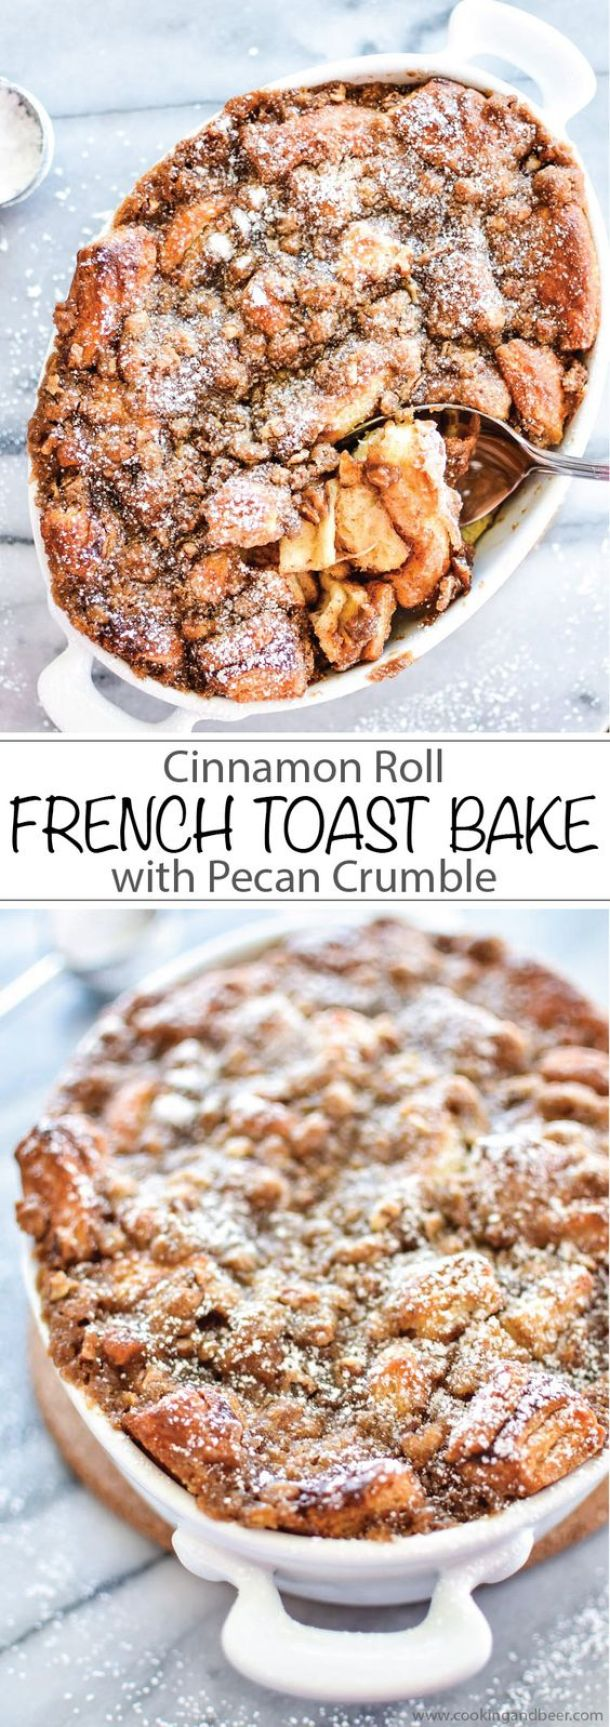 Cinnamon Roll French Toast Bake with Pecan Crumble Recipe | Cooking and Beer - The BEST Cinnamon Rolls Recipes - Perfect Treats for Breakfast, Brunch, Desserts, Christmas Morning, Special Occasions and Holidays